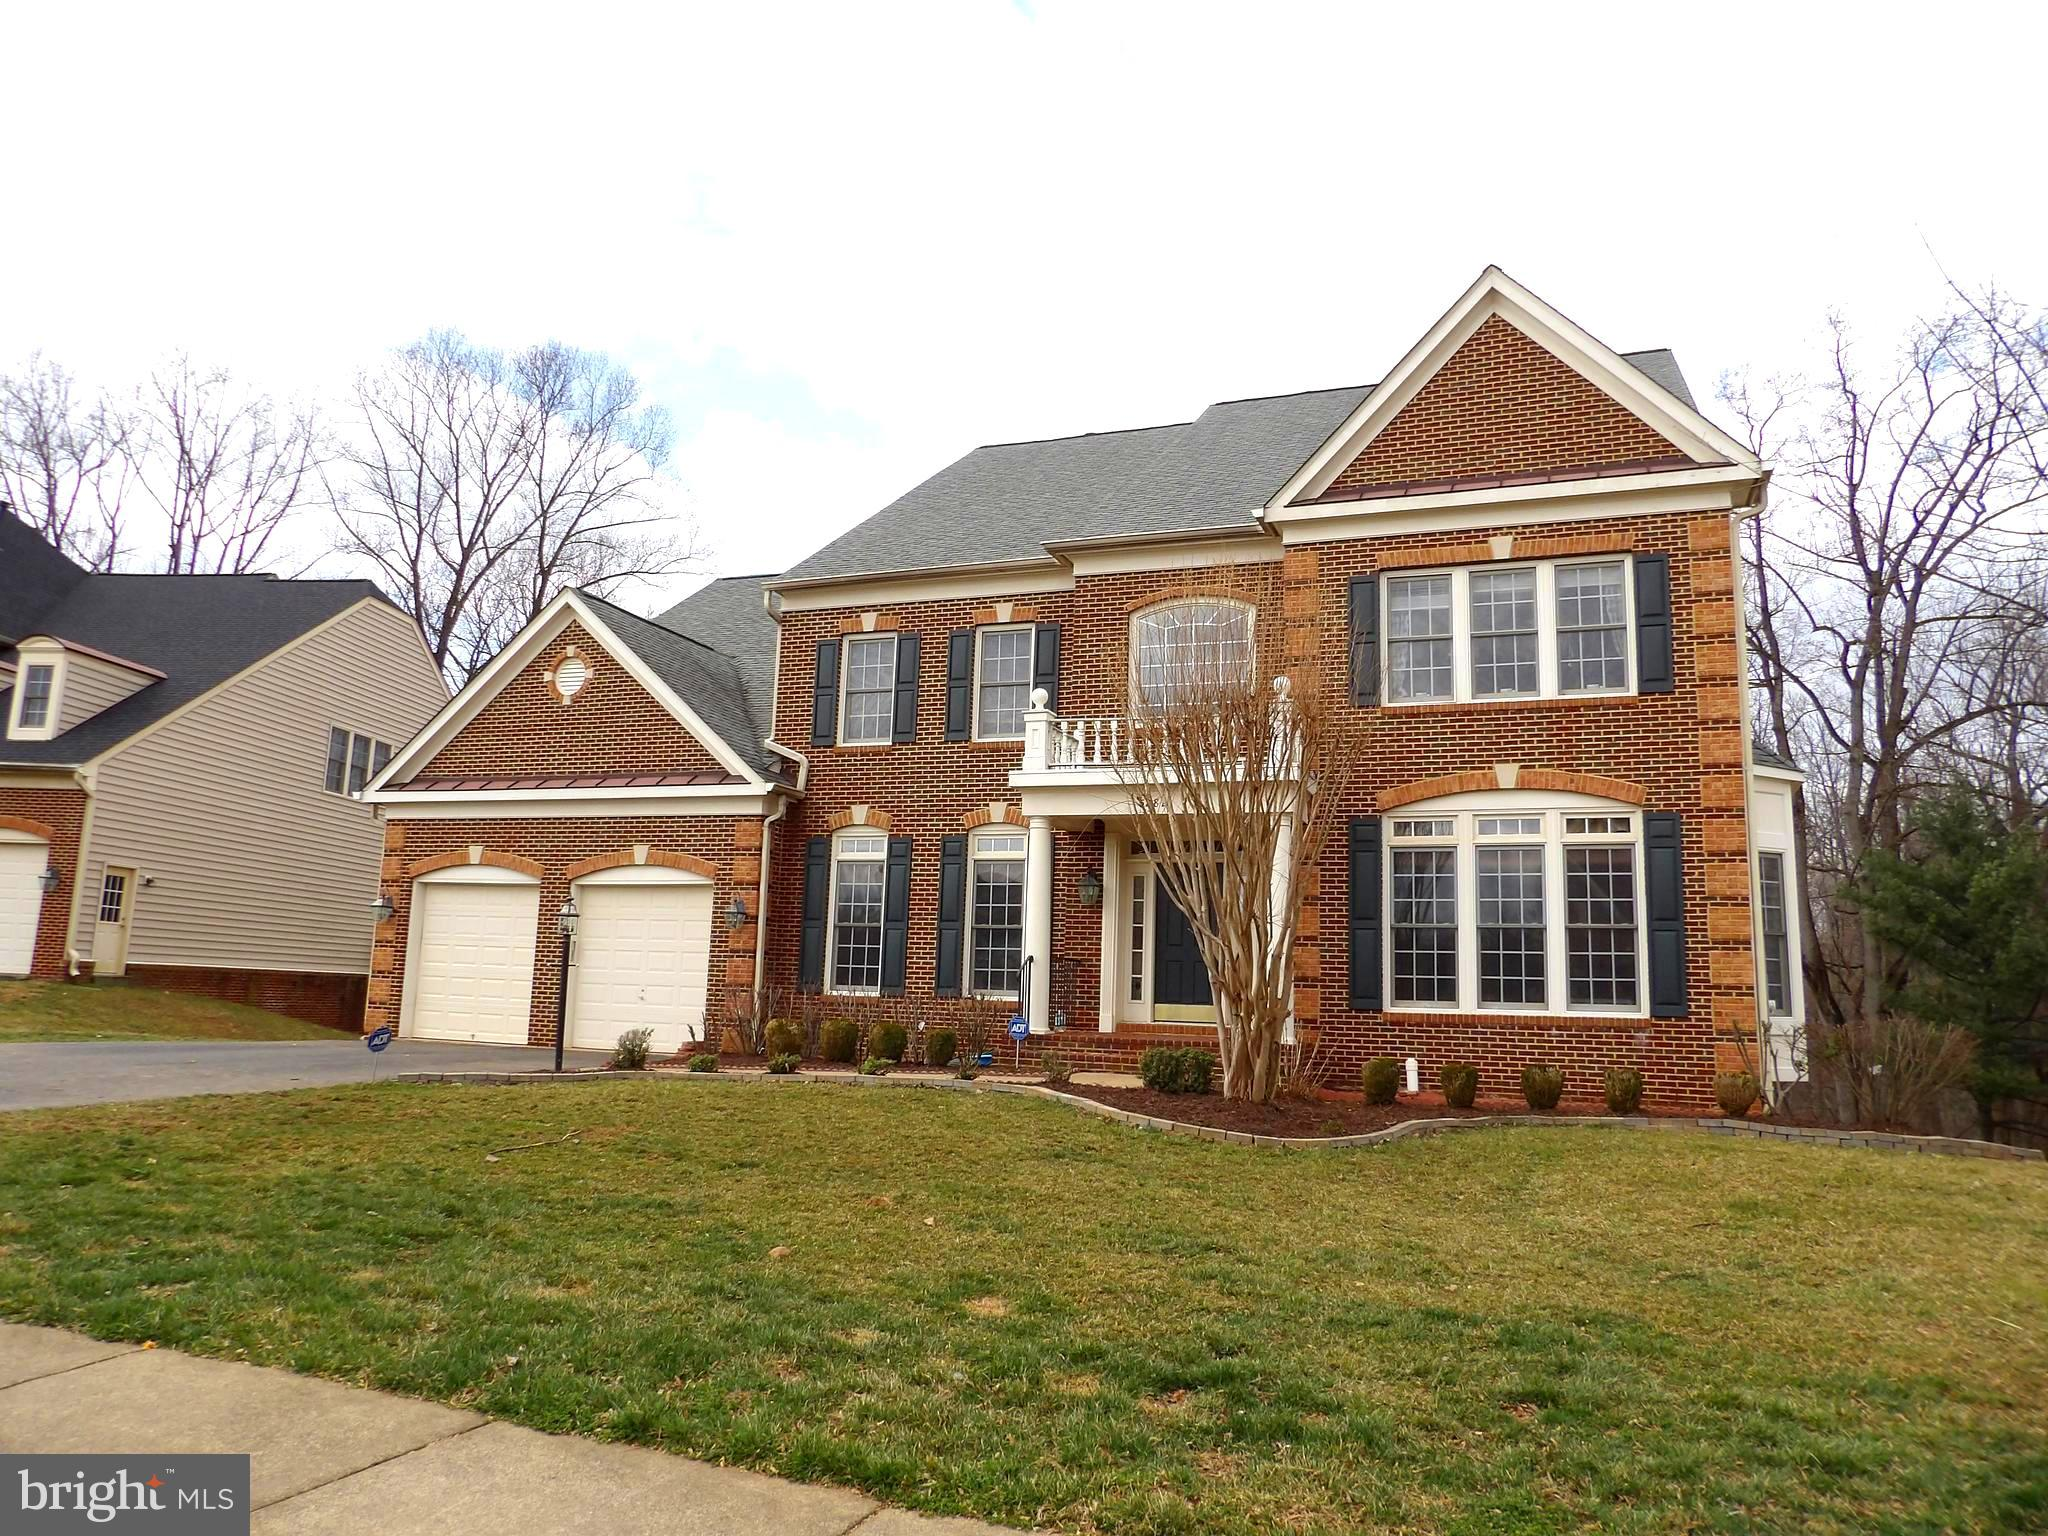 Luxurious Home w/ 10' ceiling.   Close to Rt 29, Fairfax Cty PKWY, & I-66.   Fair Oaks Mall, Costco & Shopping Center are close by.   Two Staircases, Gourmet Kitchen w/ Gas cook top, SS Appliances, Double Oven, Granite Ctr Top & Big Granite island.    Fabulous Master suite w/ LUX Bath. Sitting area, Balcony.   Large W/O basement w/  Huge Recreation Room w/ the wet bar,  Additional two rooms.    Maintenance Free Deck.   Premium Lot  w/ view of  trees and Pond.  Large Laundry & Work room on the main floor w/ Half Bath.   New Carpet.   Enjoy the sunset from the balcon and the deck!